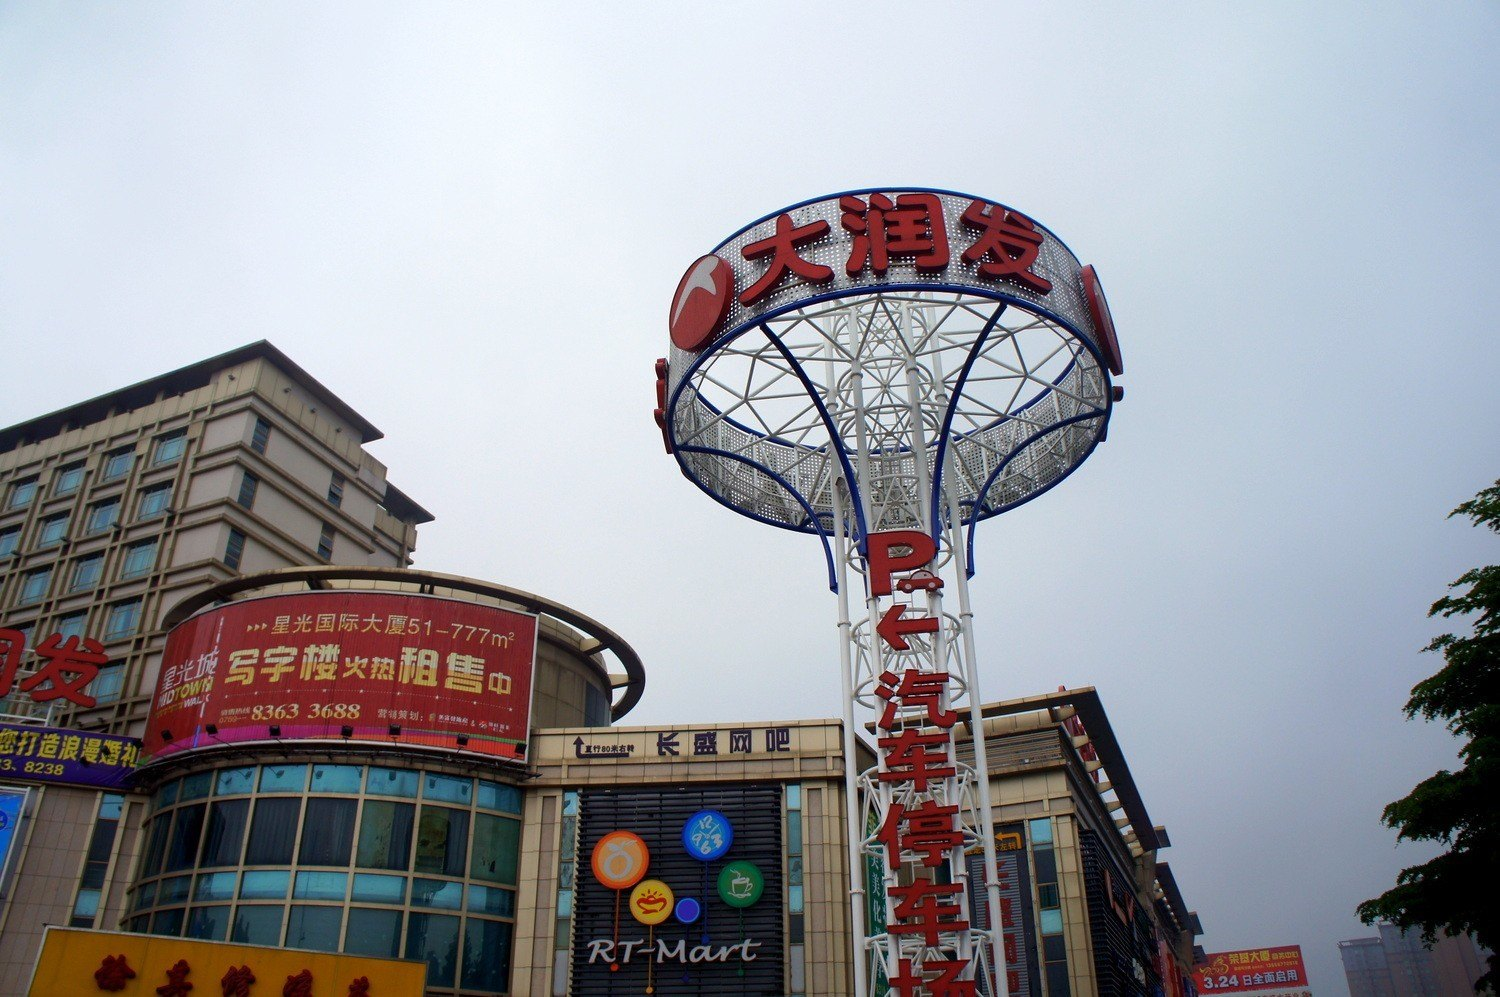 The city center of Dongguan, known as the